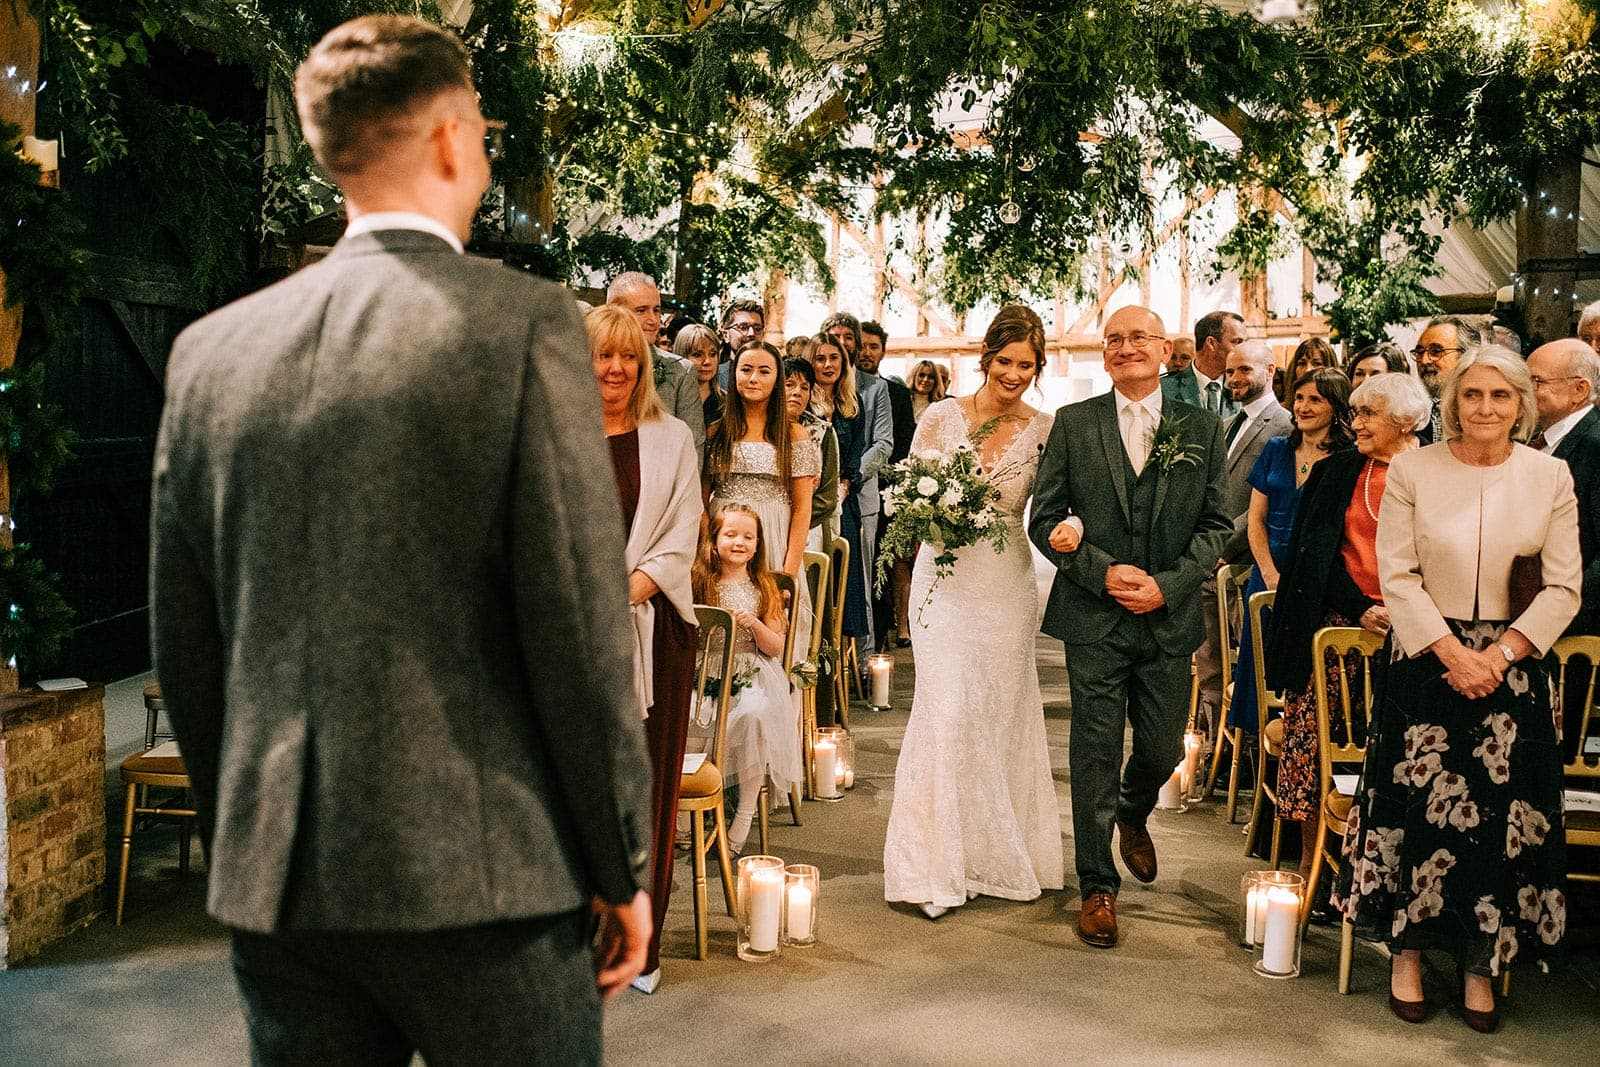 Louise and her dad walking down the aisle